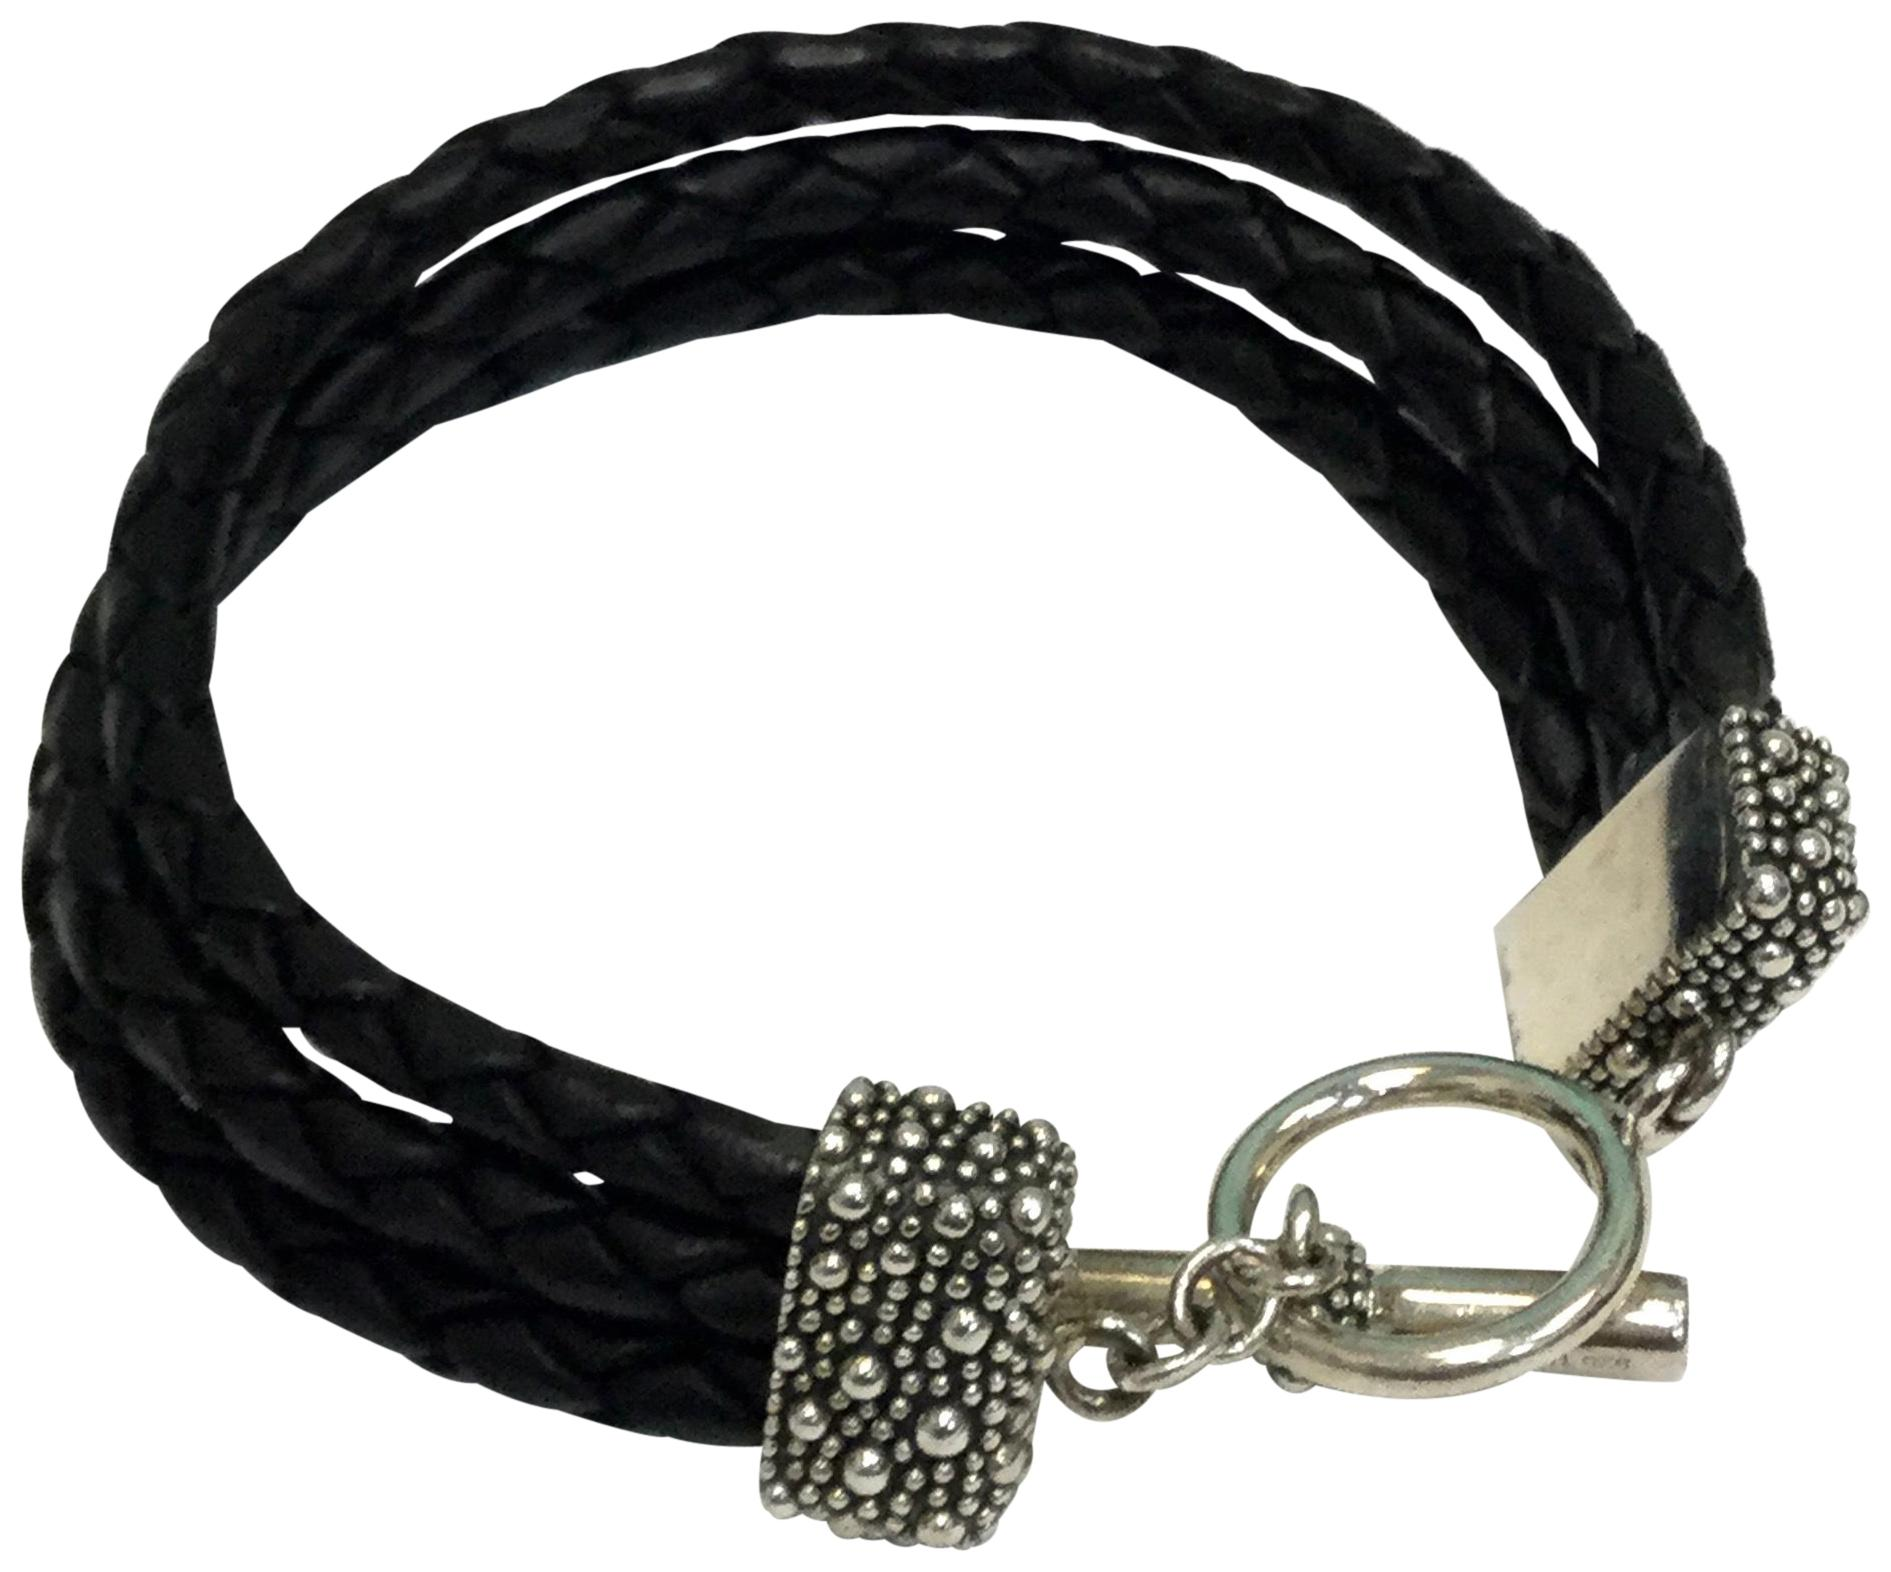 multi-stranded woven bracelet - Black Saint Laurent xPINmH